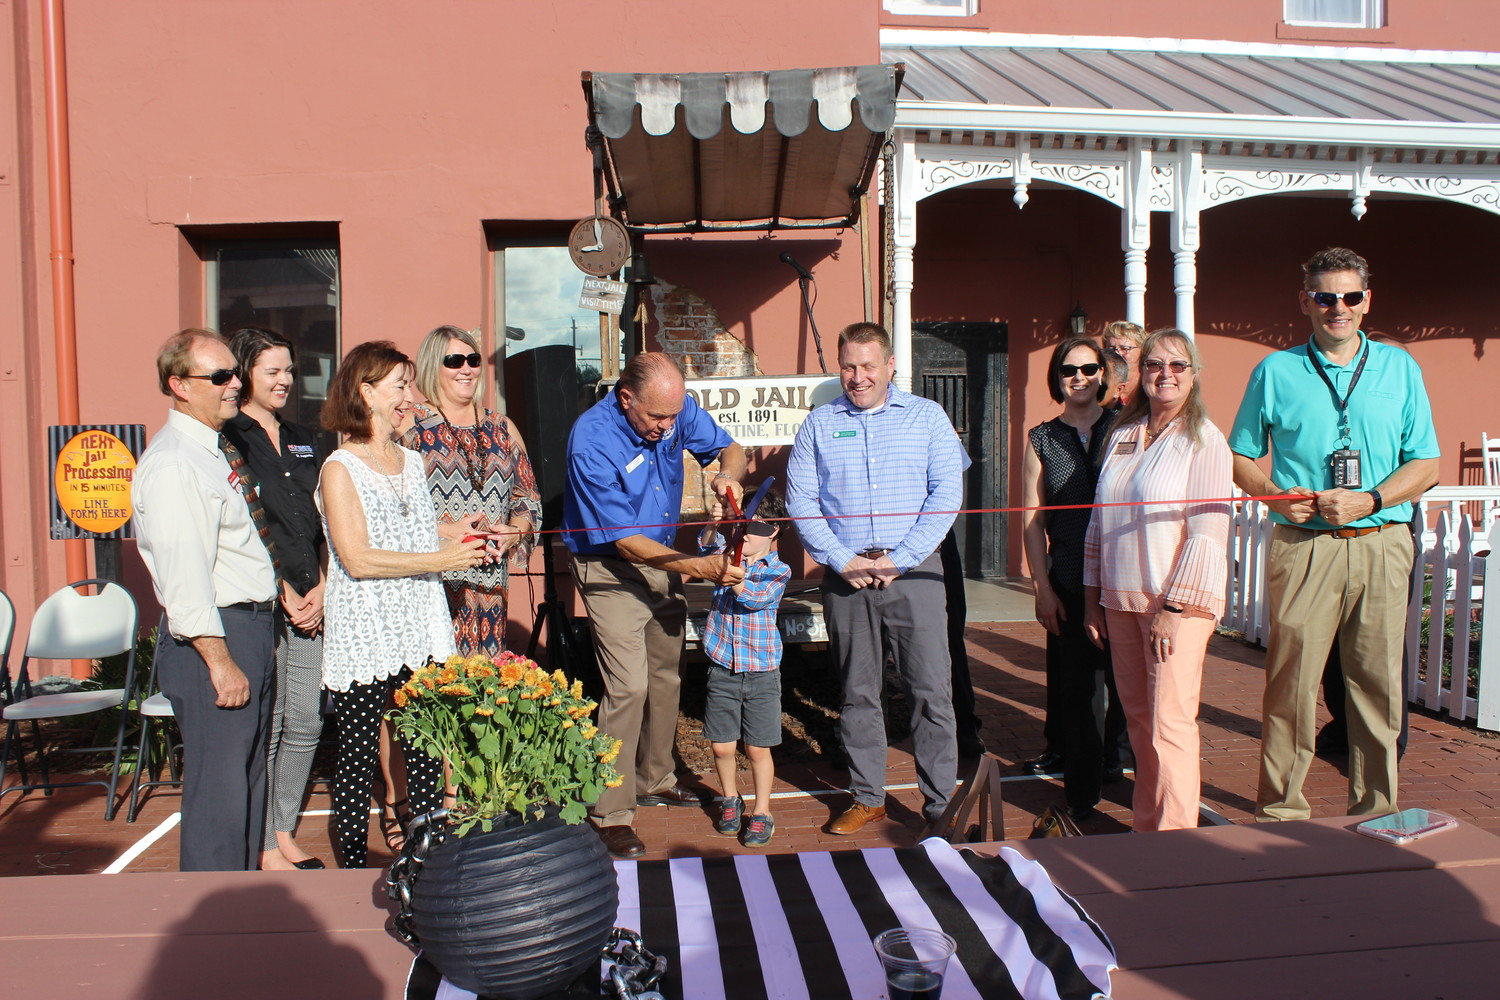 Local officials and representatives from Historic Tours of America celebrate the restoration of the Old Jail Museum in St. Augustine on Sept. 26.